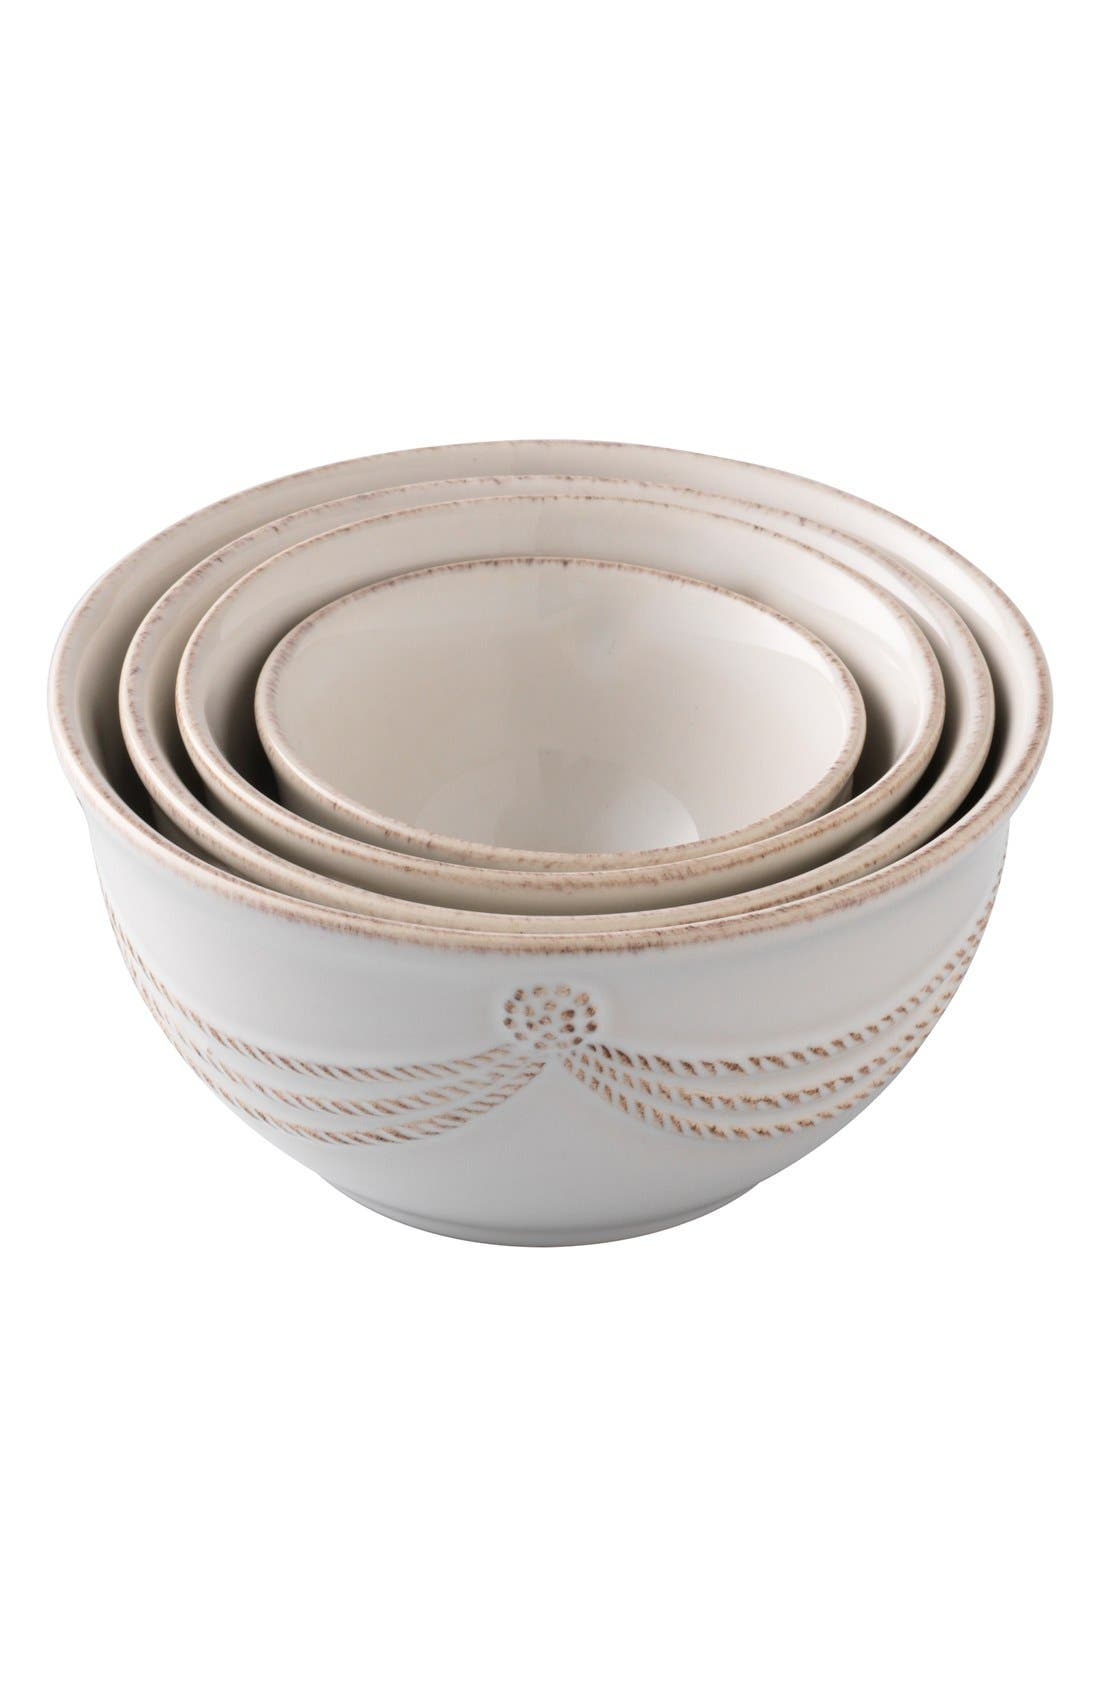 'Berry and Thread' Nesting Prep Bowls,                         Main,                         color, Whitewash